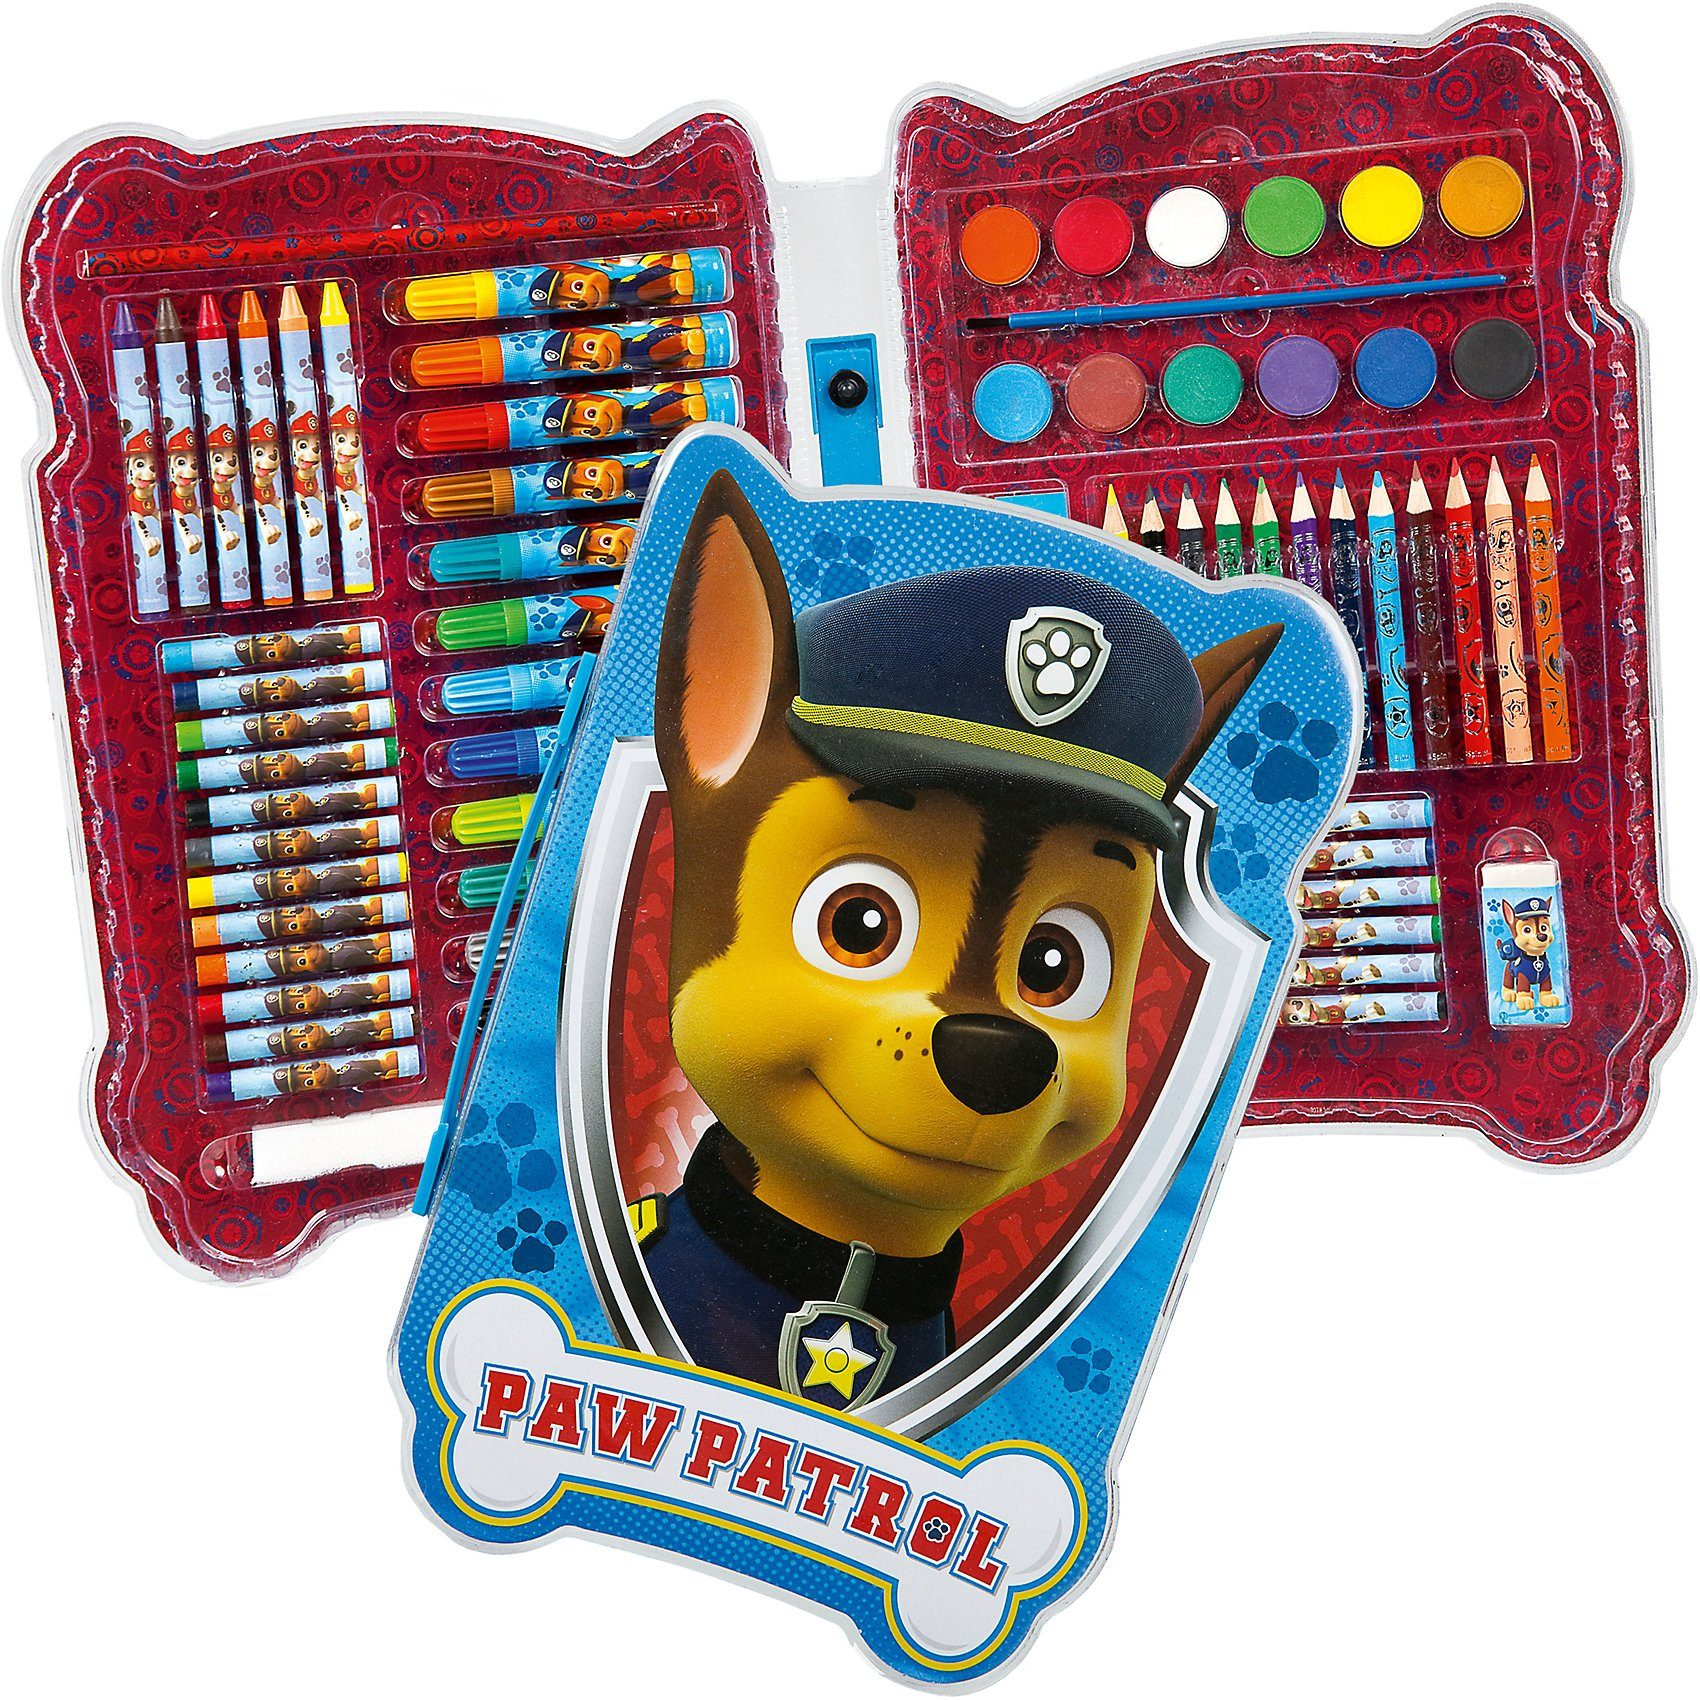 UNDERCOVER Malkoffer Shape PAW Patrol, 73-tlg.